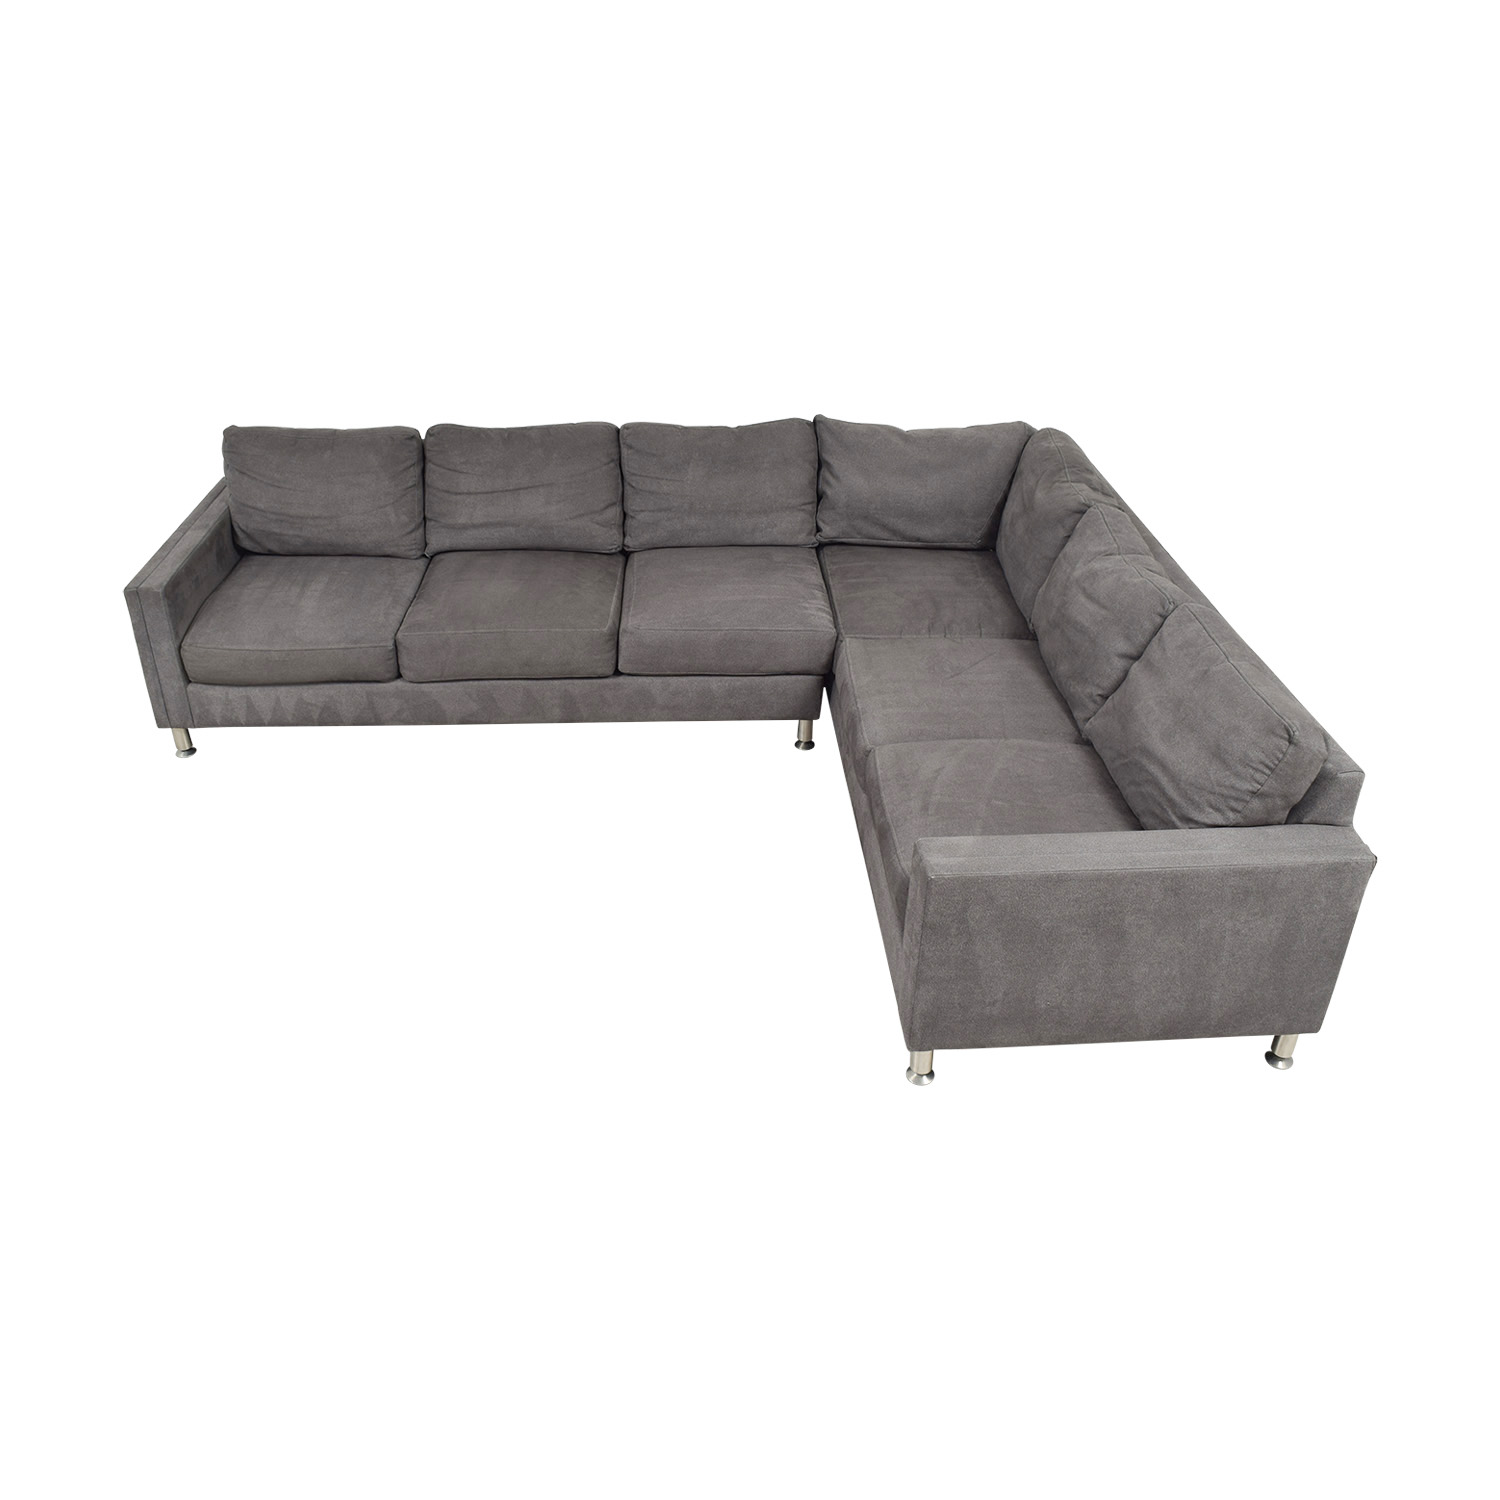 Safavieh Safavieh Grey L-Shaped Sectional Sectionals